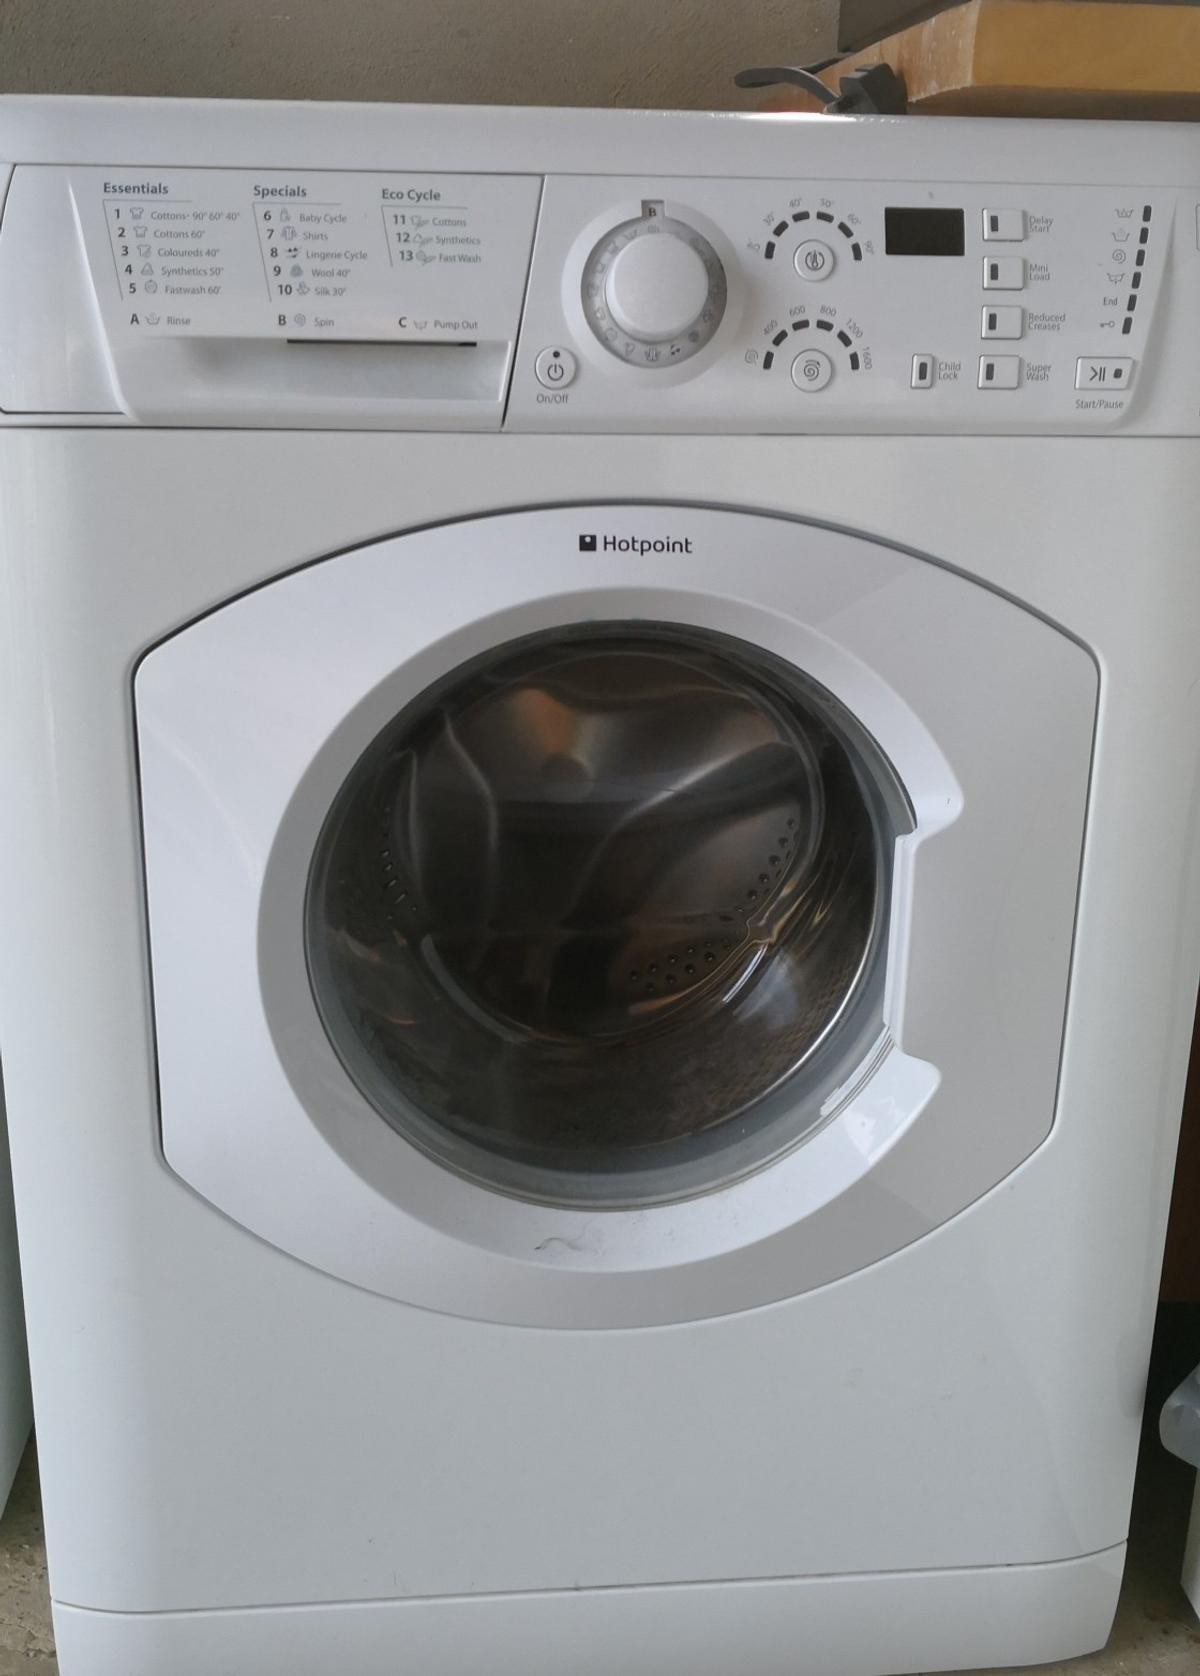 Hotpoint HV6F160 Washing machine in Swale for £85 00 for